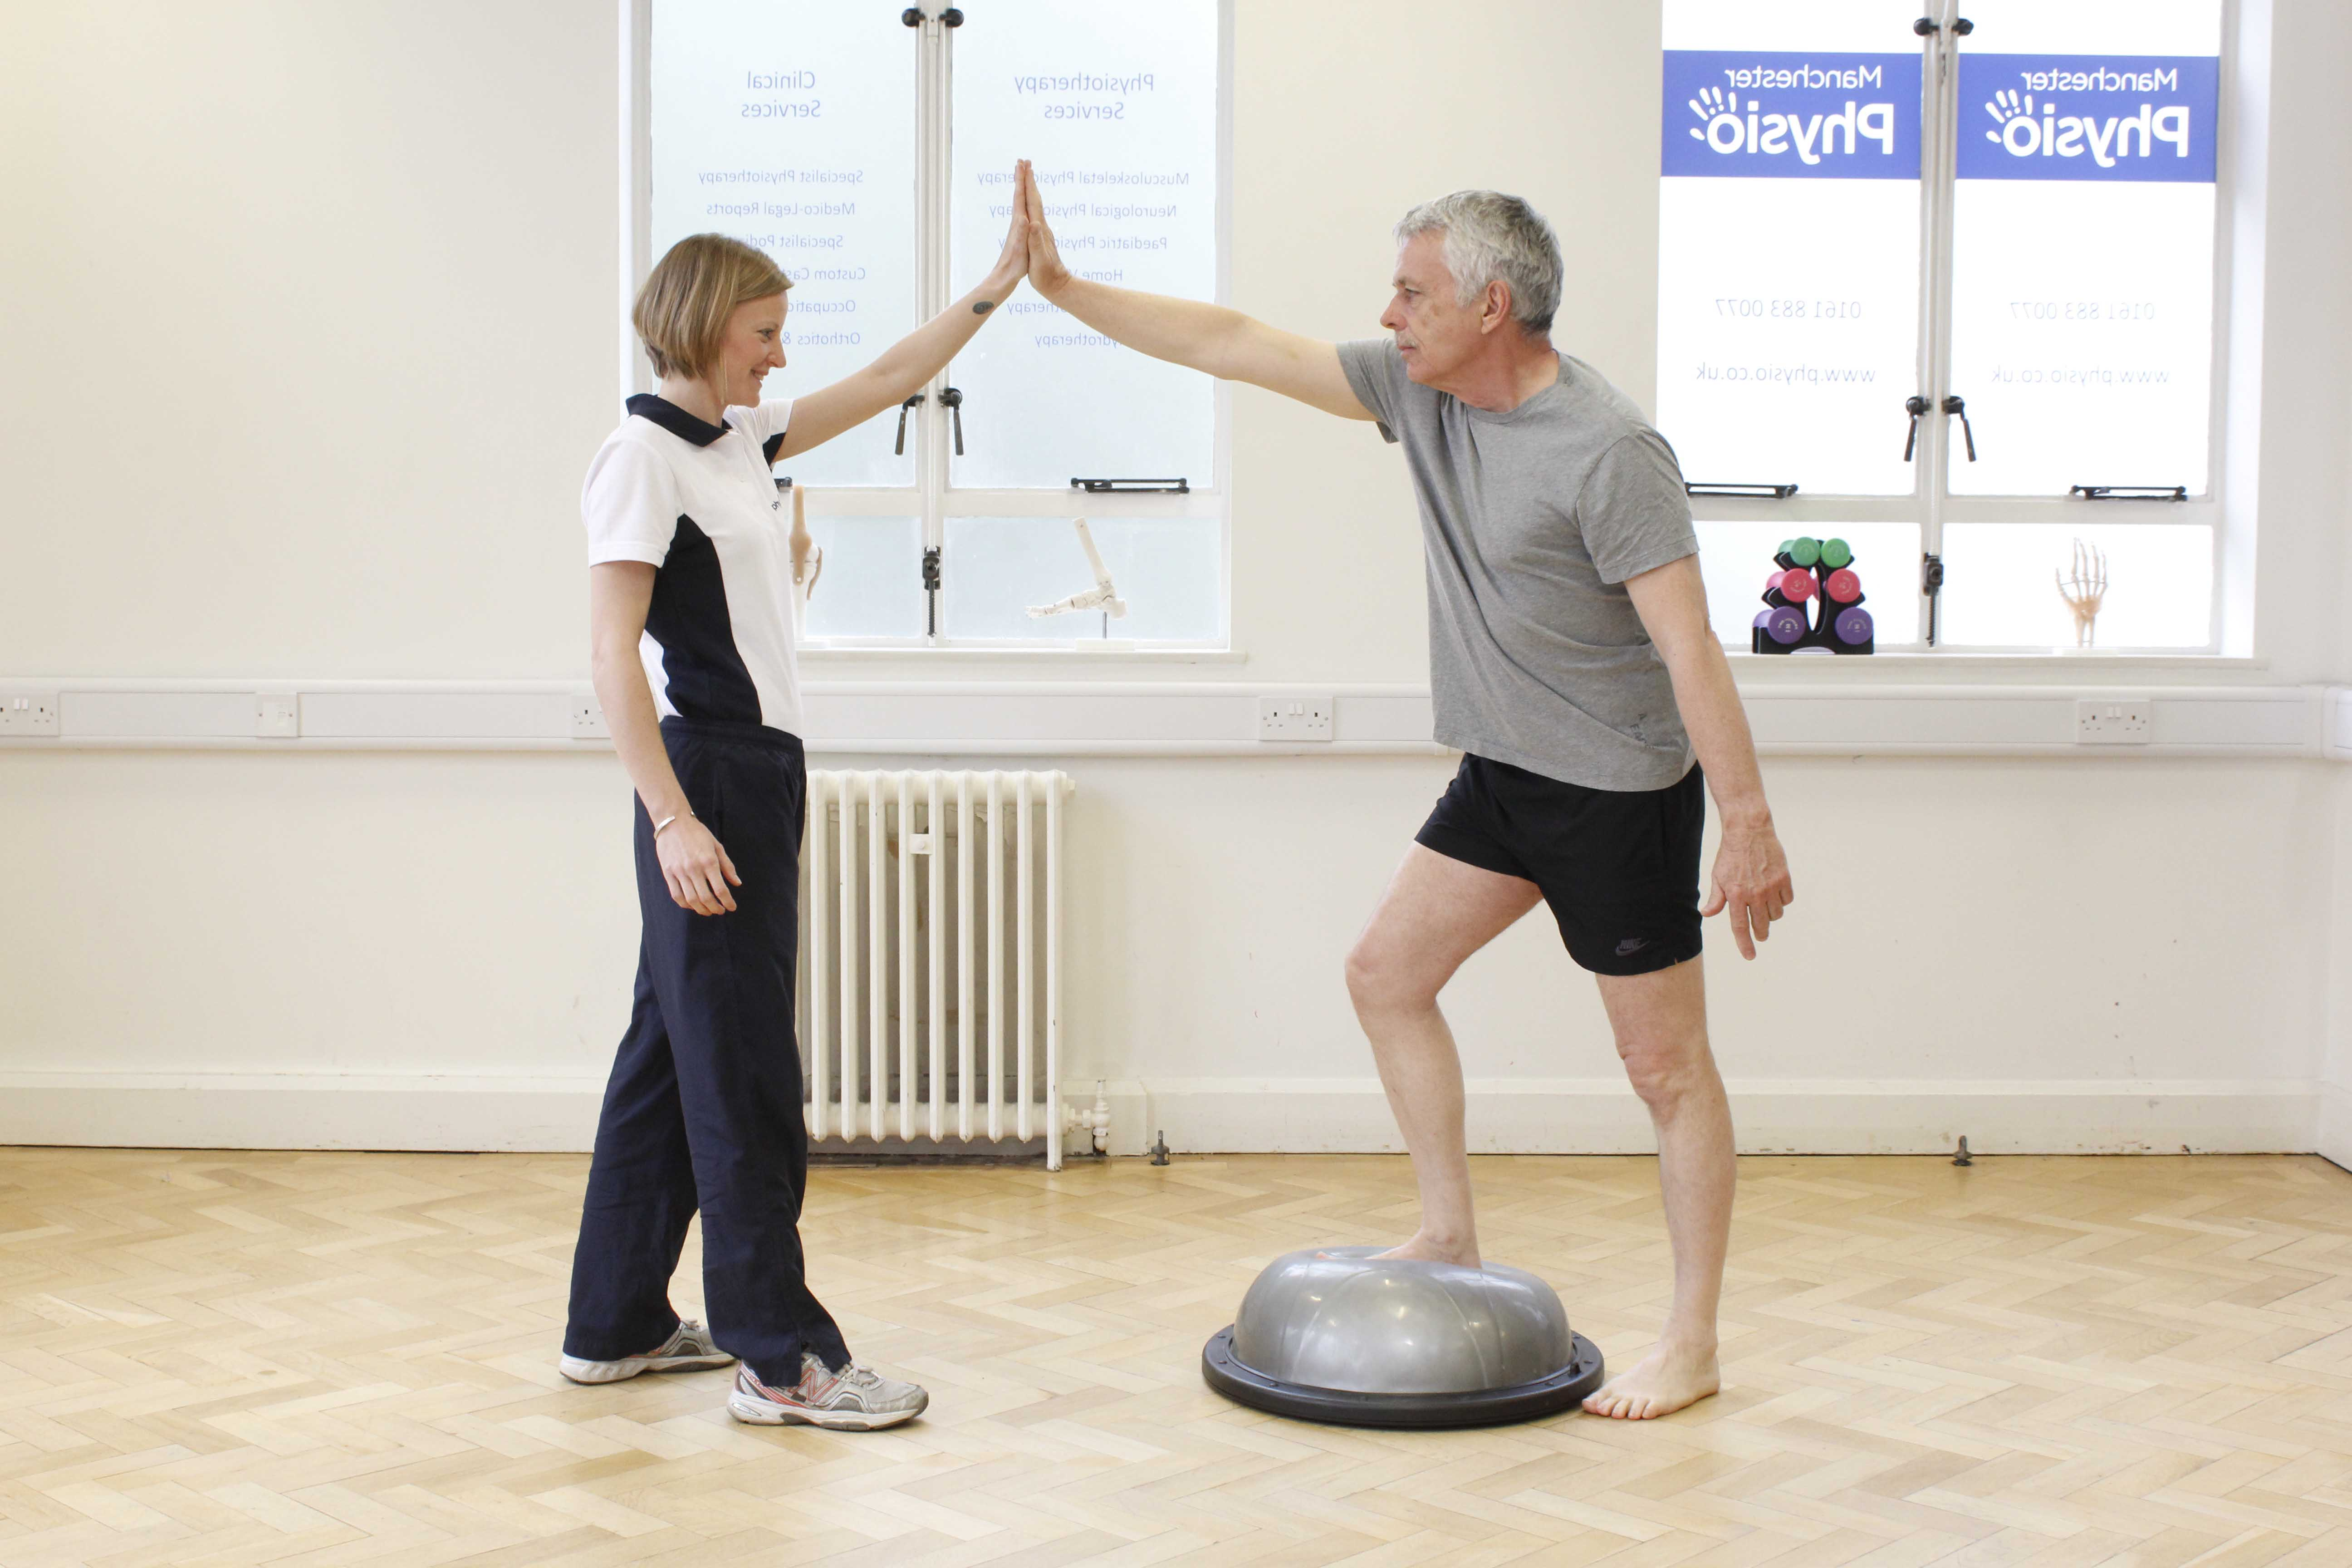 Physiotherapist led stability training to reduce risk of falls